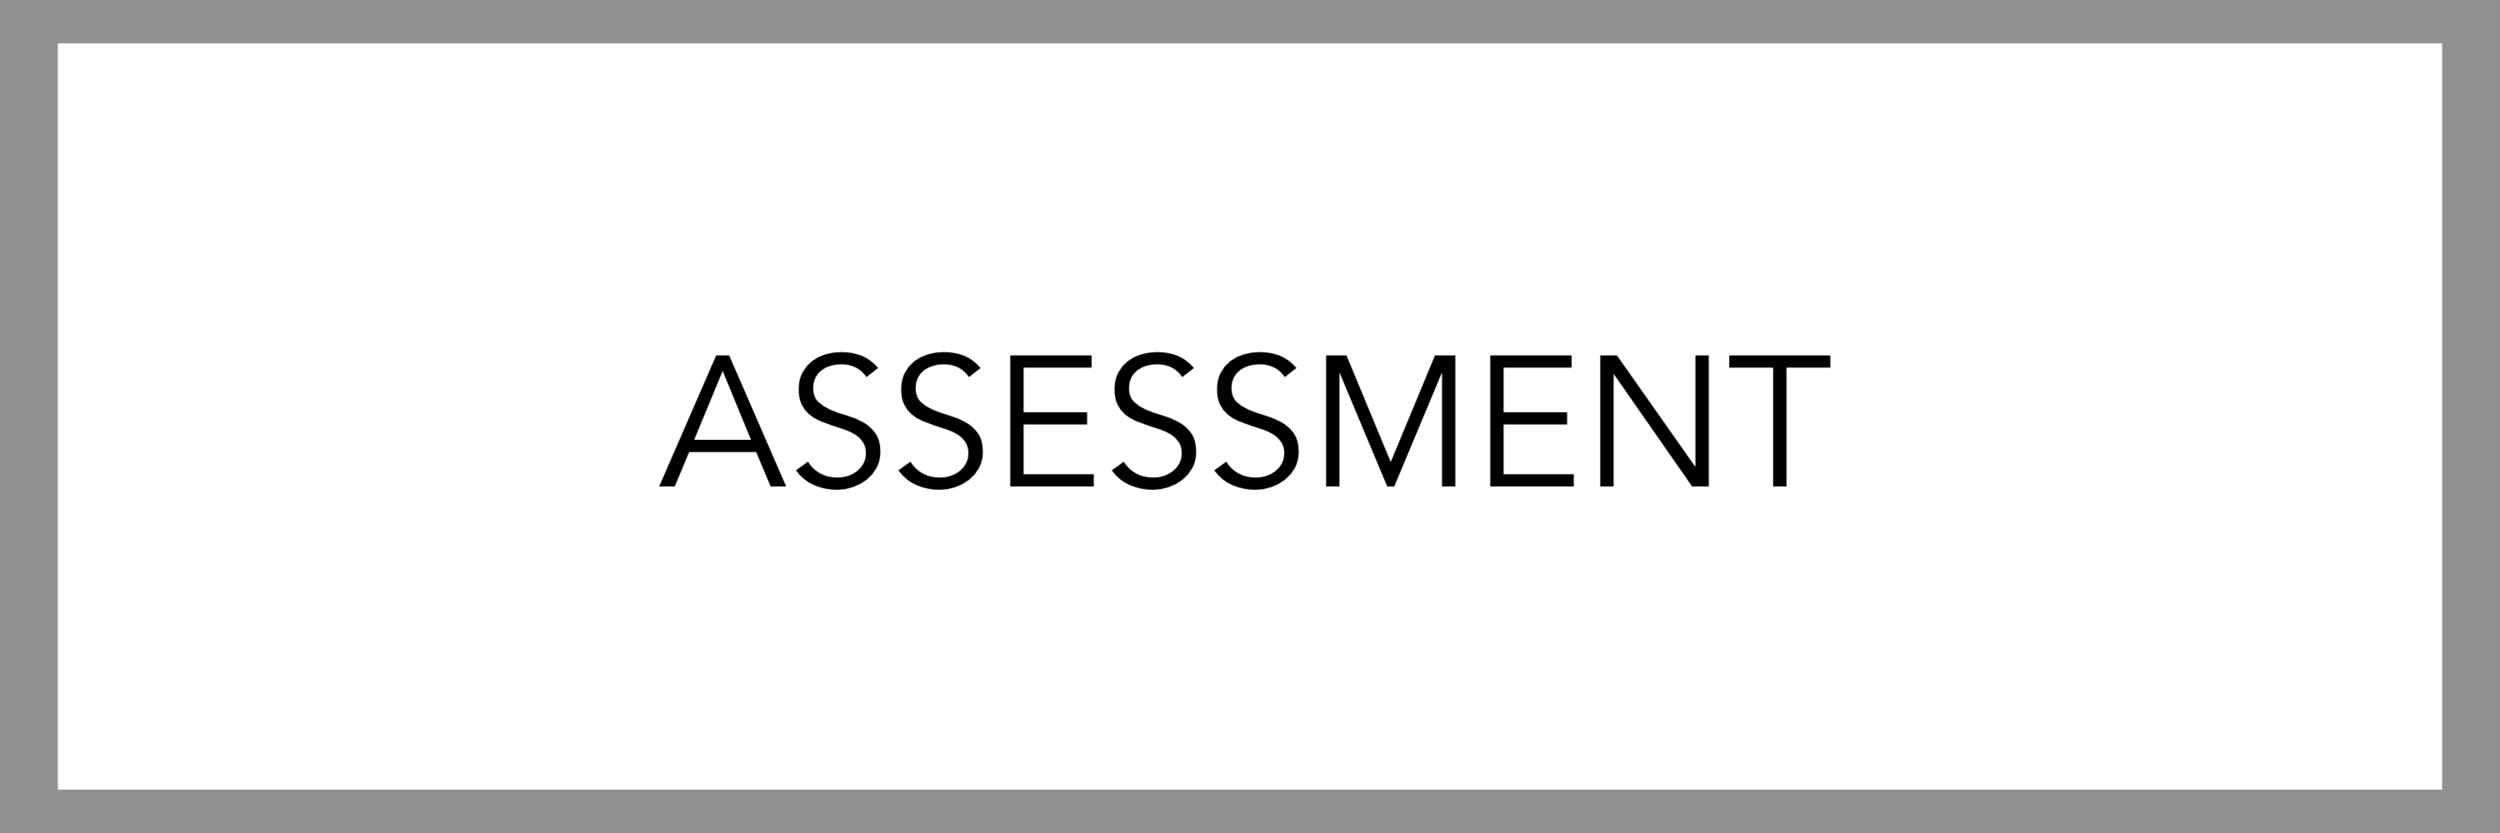 session ASSESSMENT.png